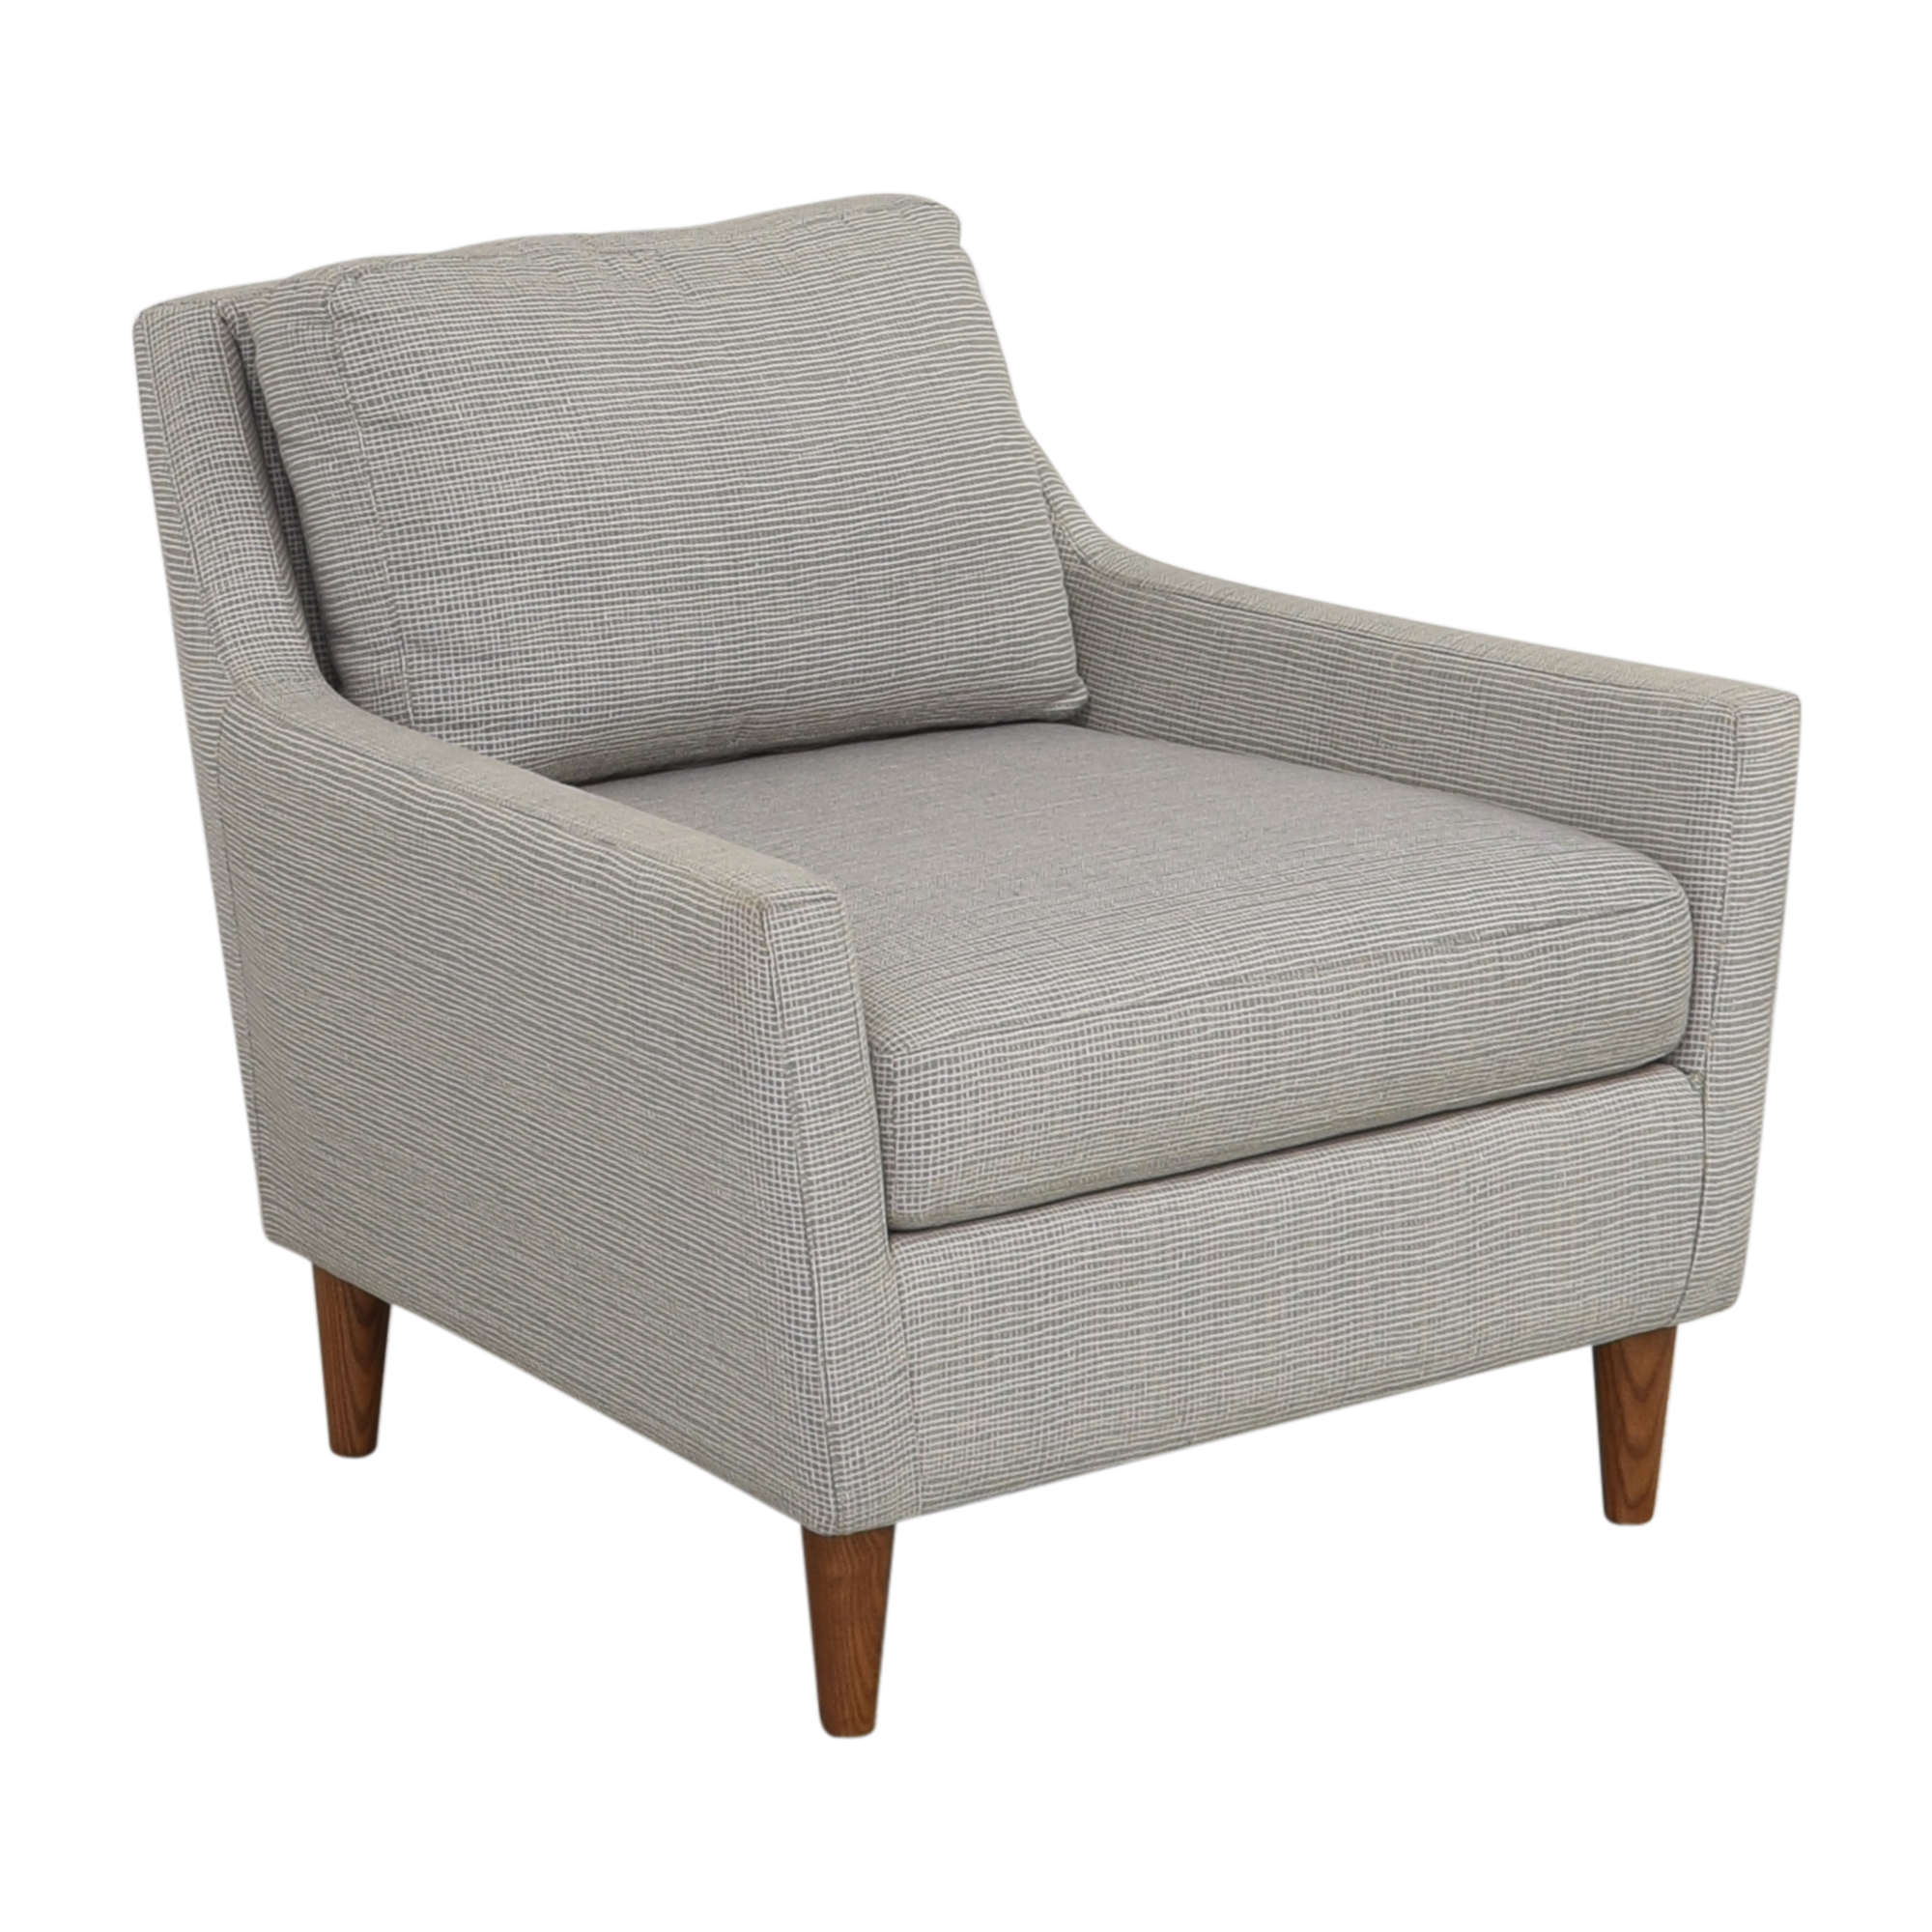 West Elm Accent Chair / Chairs